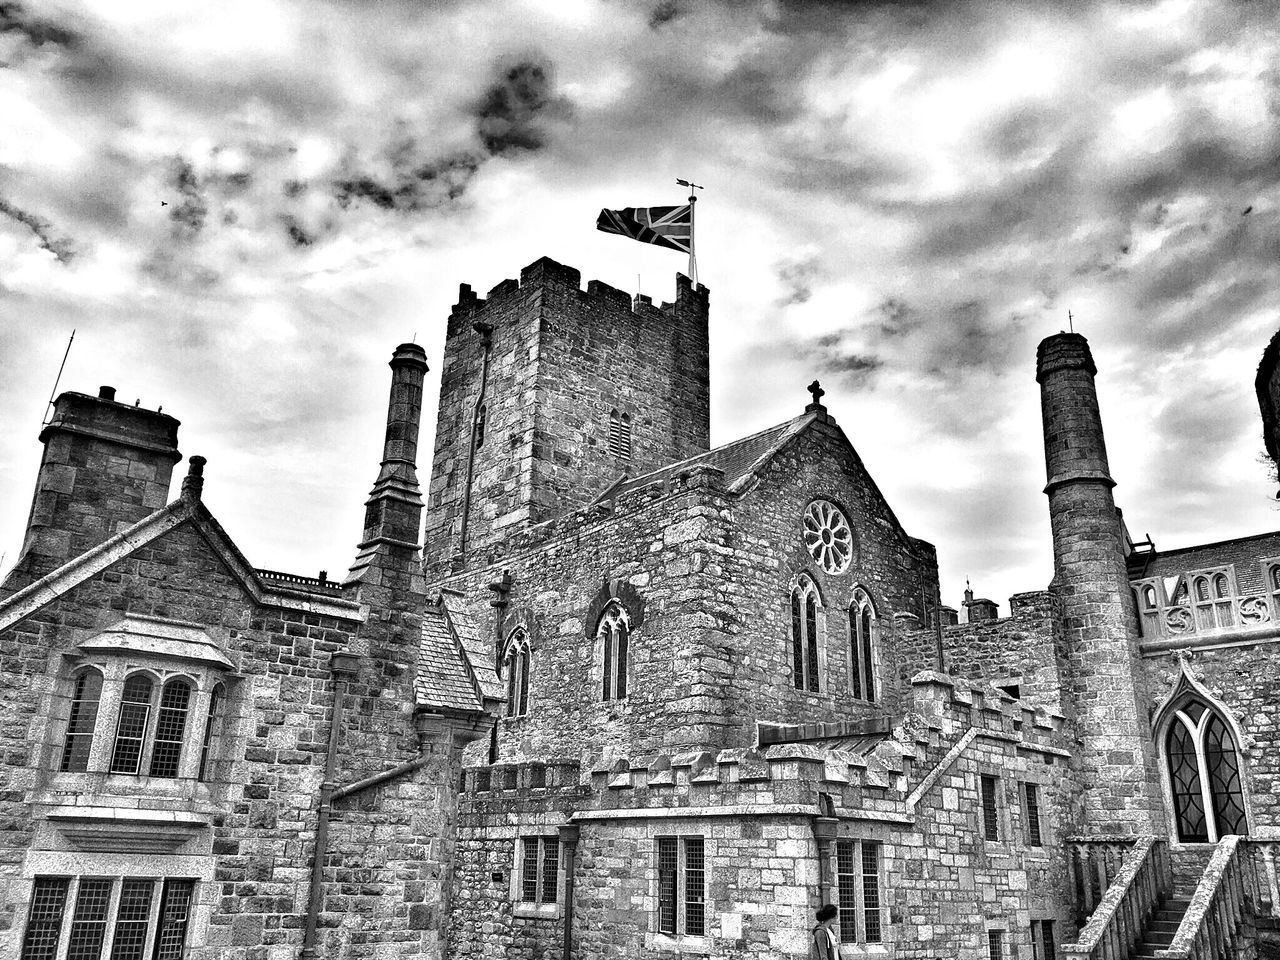 Built Structure Architecture Building Exterior Low Angle View Sky Old Cloud - Sky Window Cloud History Tower Tall Day Arch Cloudy The Past Place Of Worship Façade Castle Island Cornwall Black And White Black & White